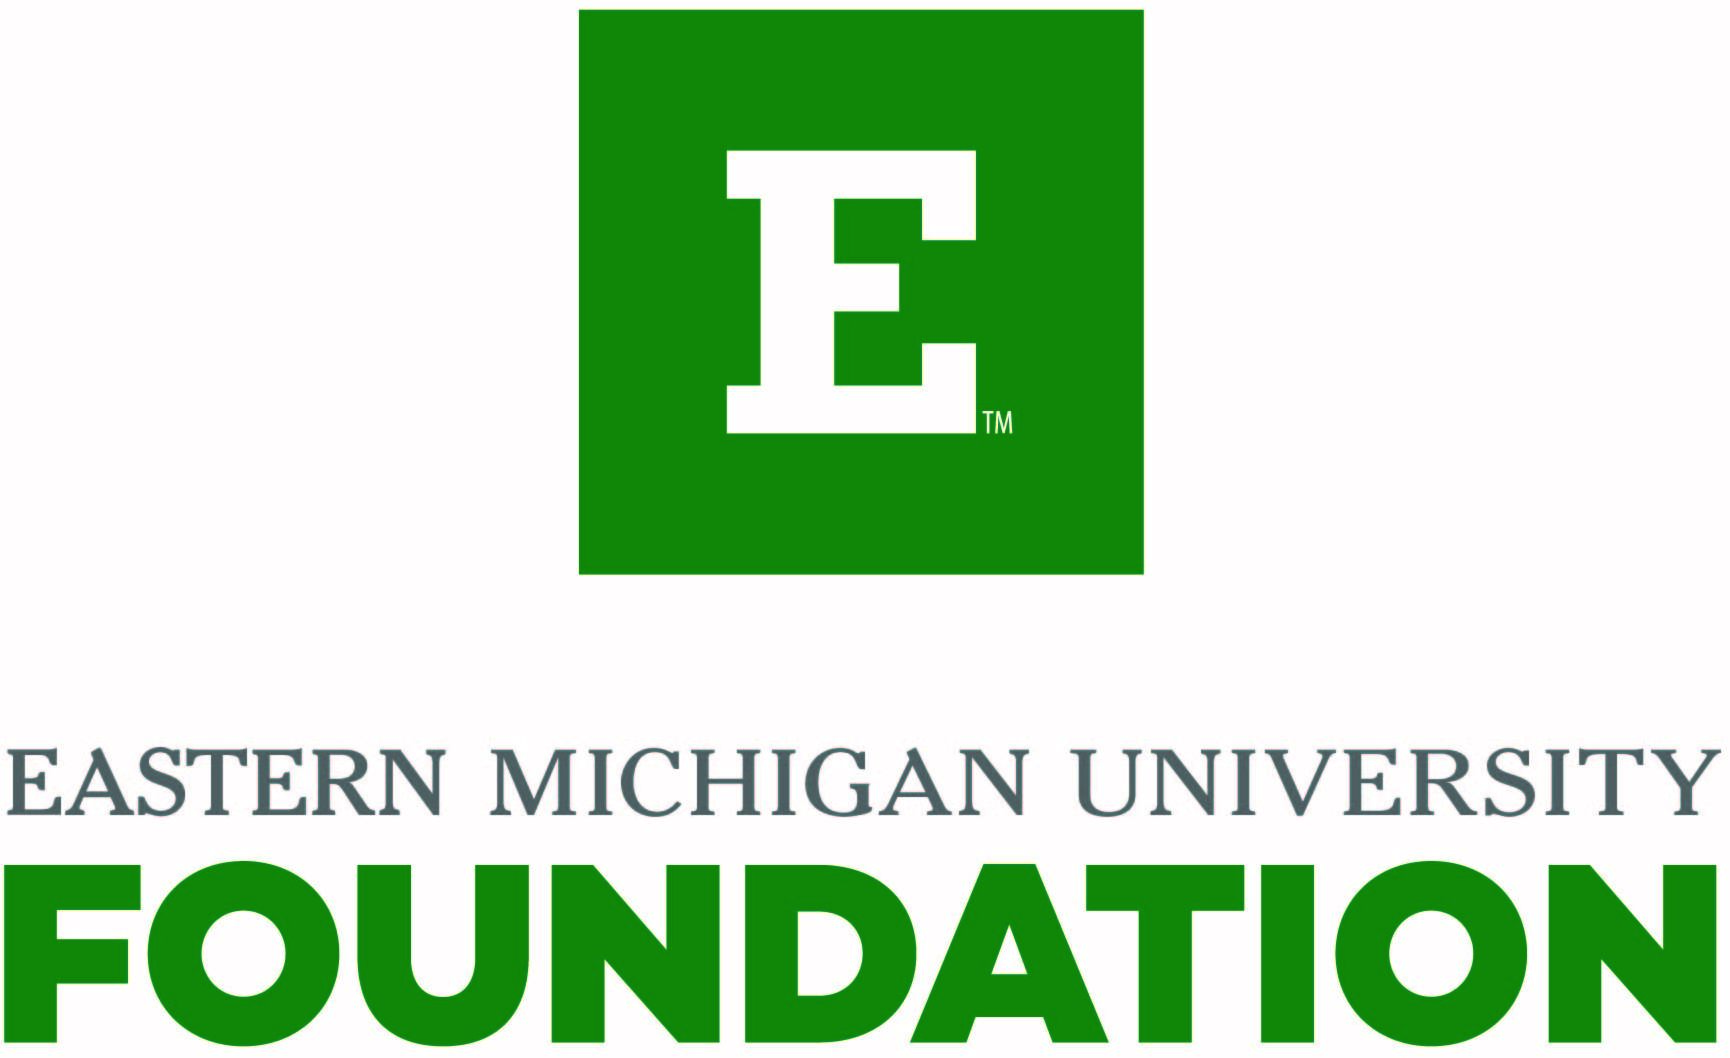 Eastern Michigan University Foundation Logo